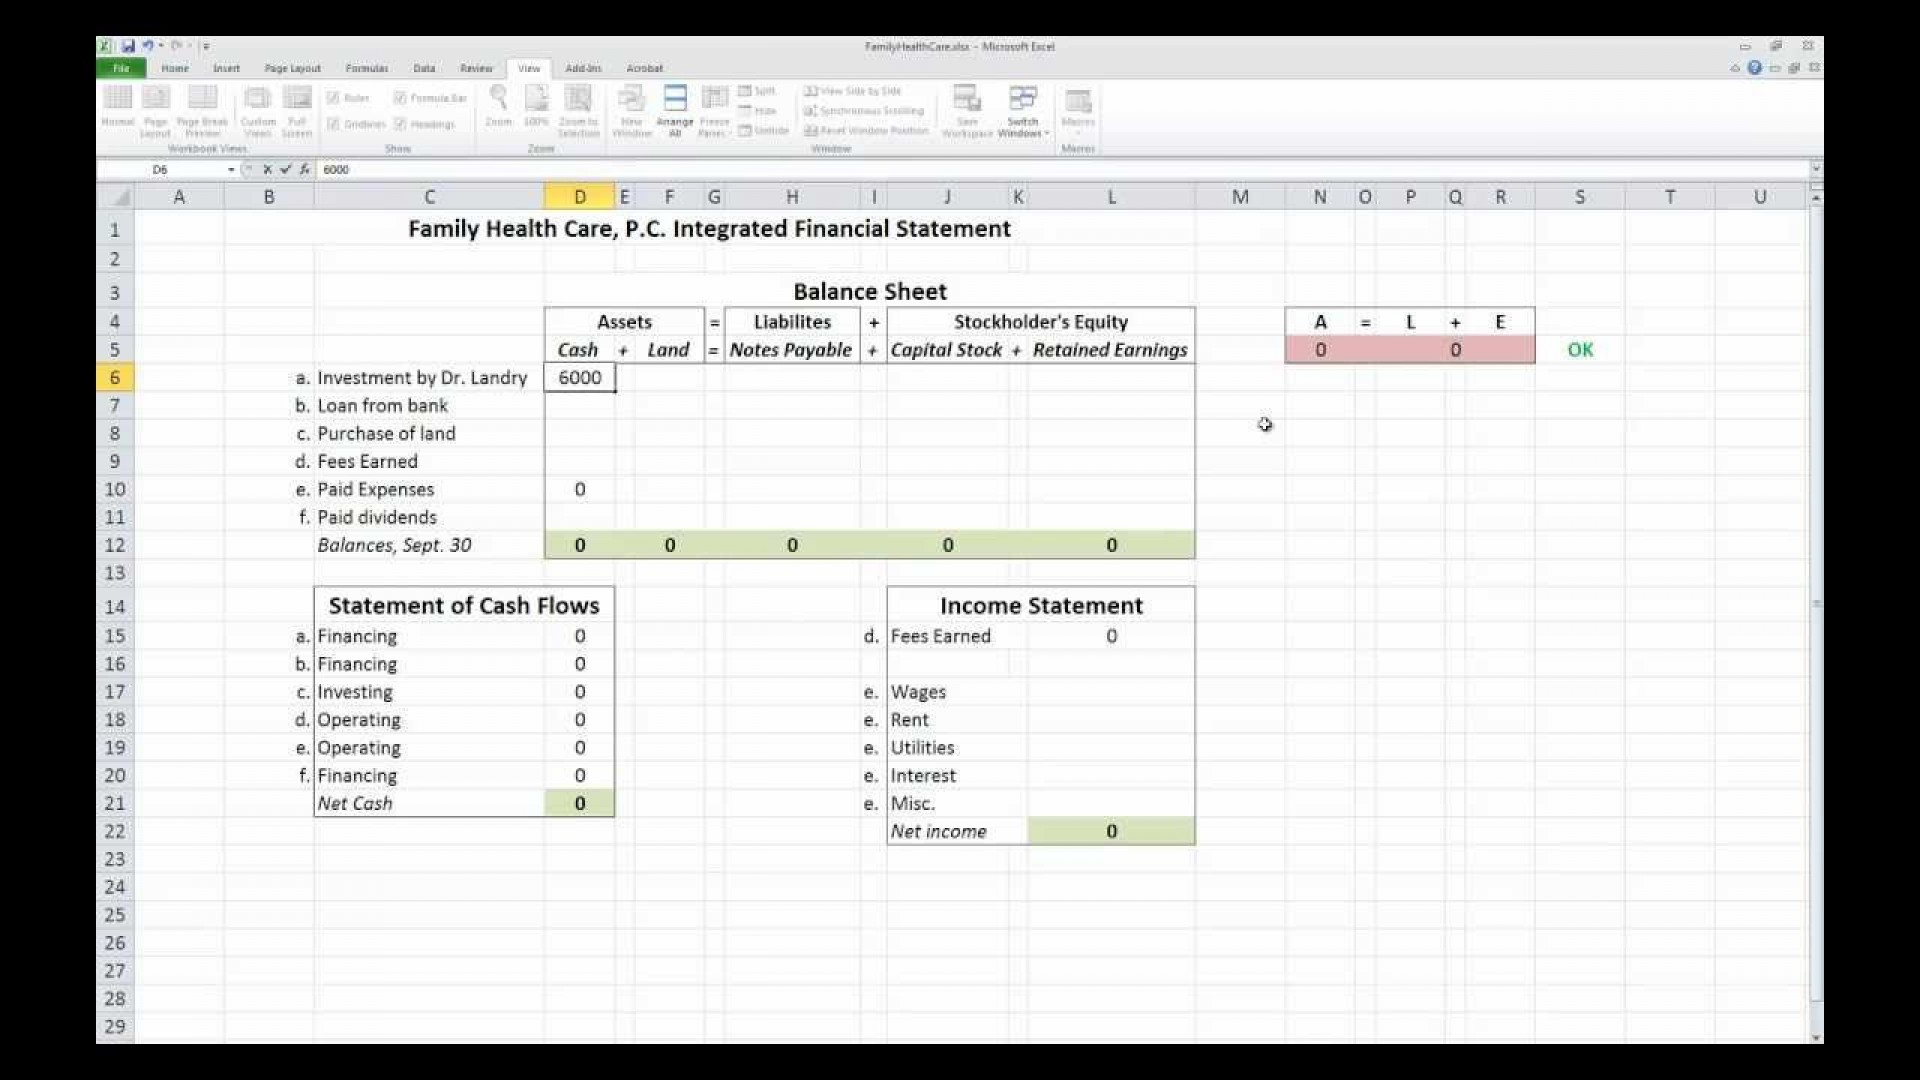 006 Wonderful Financial Statement Template Excel Inspiration  Interim Example Format Free Download1920